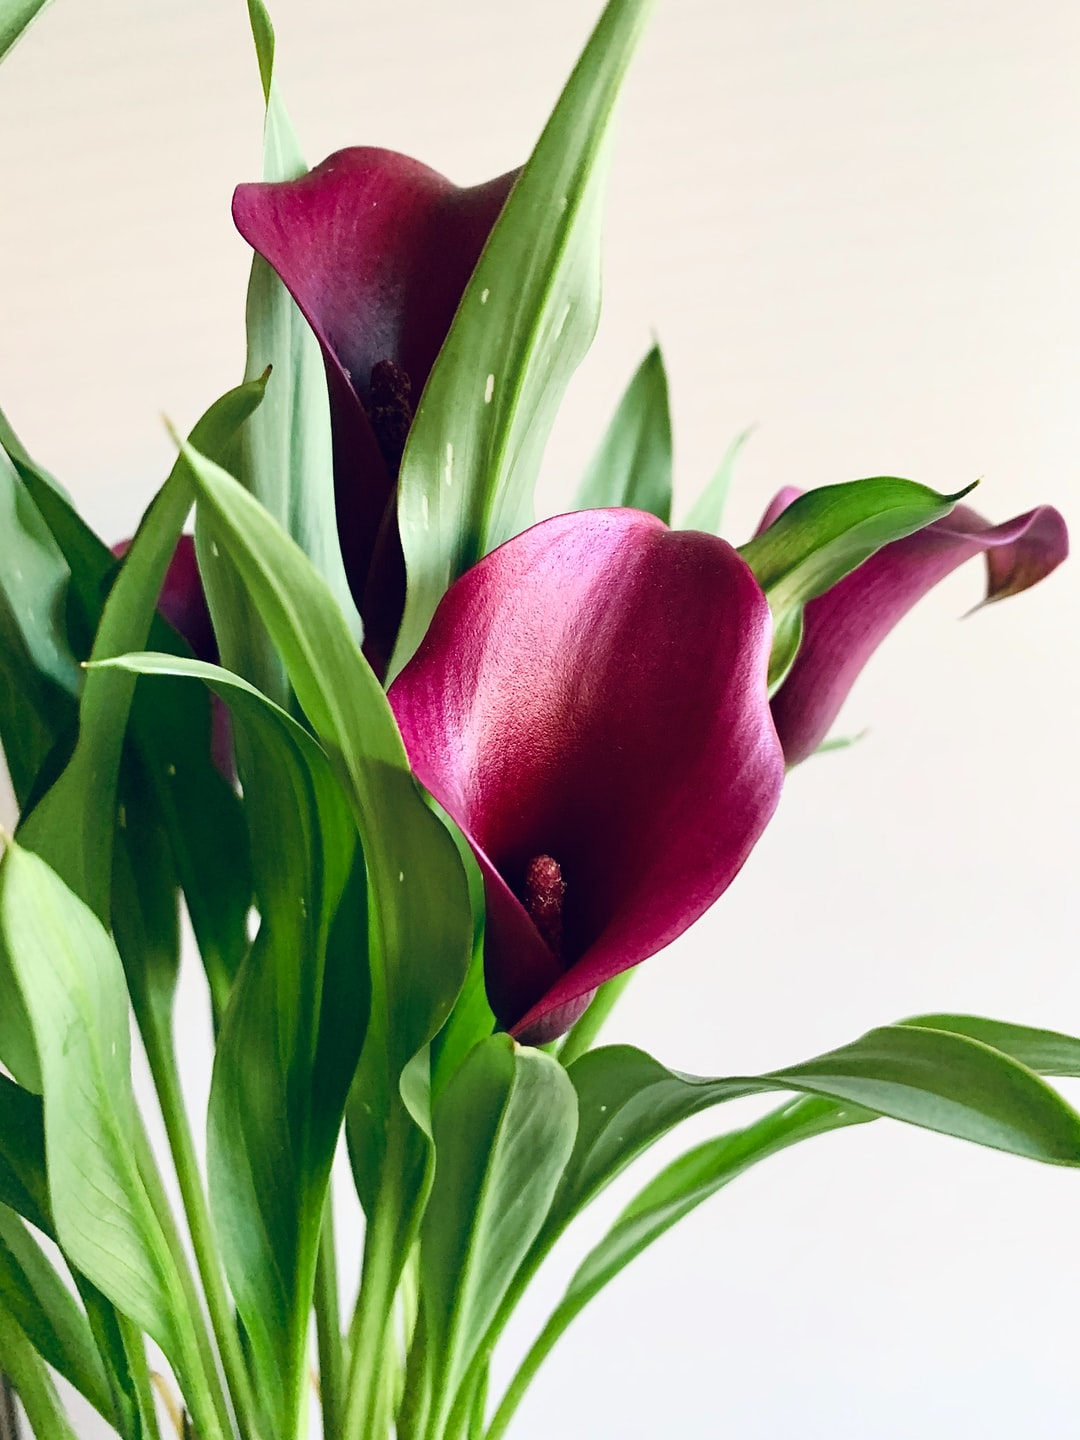 Calla Lily Blooming Houseplant. Flower plants